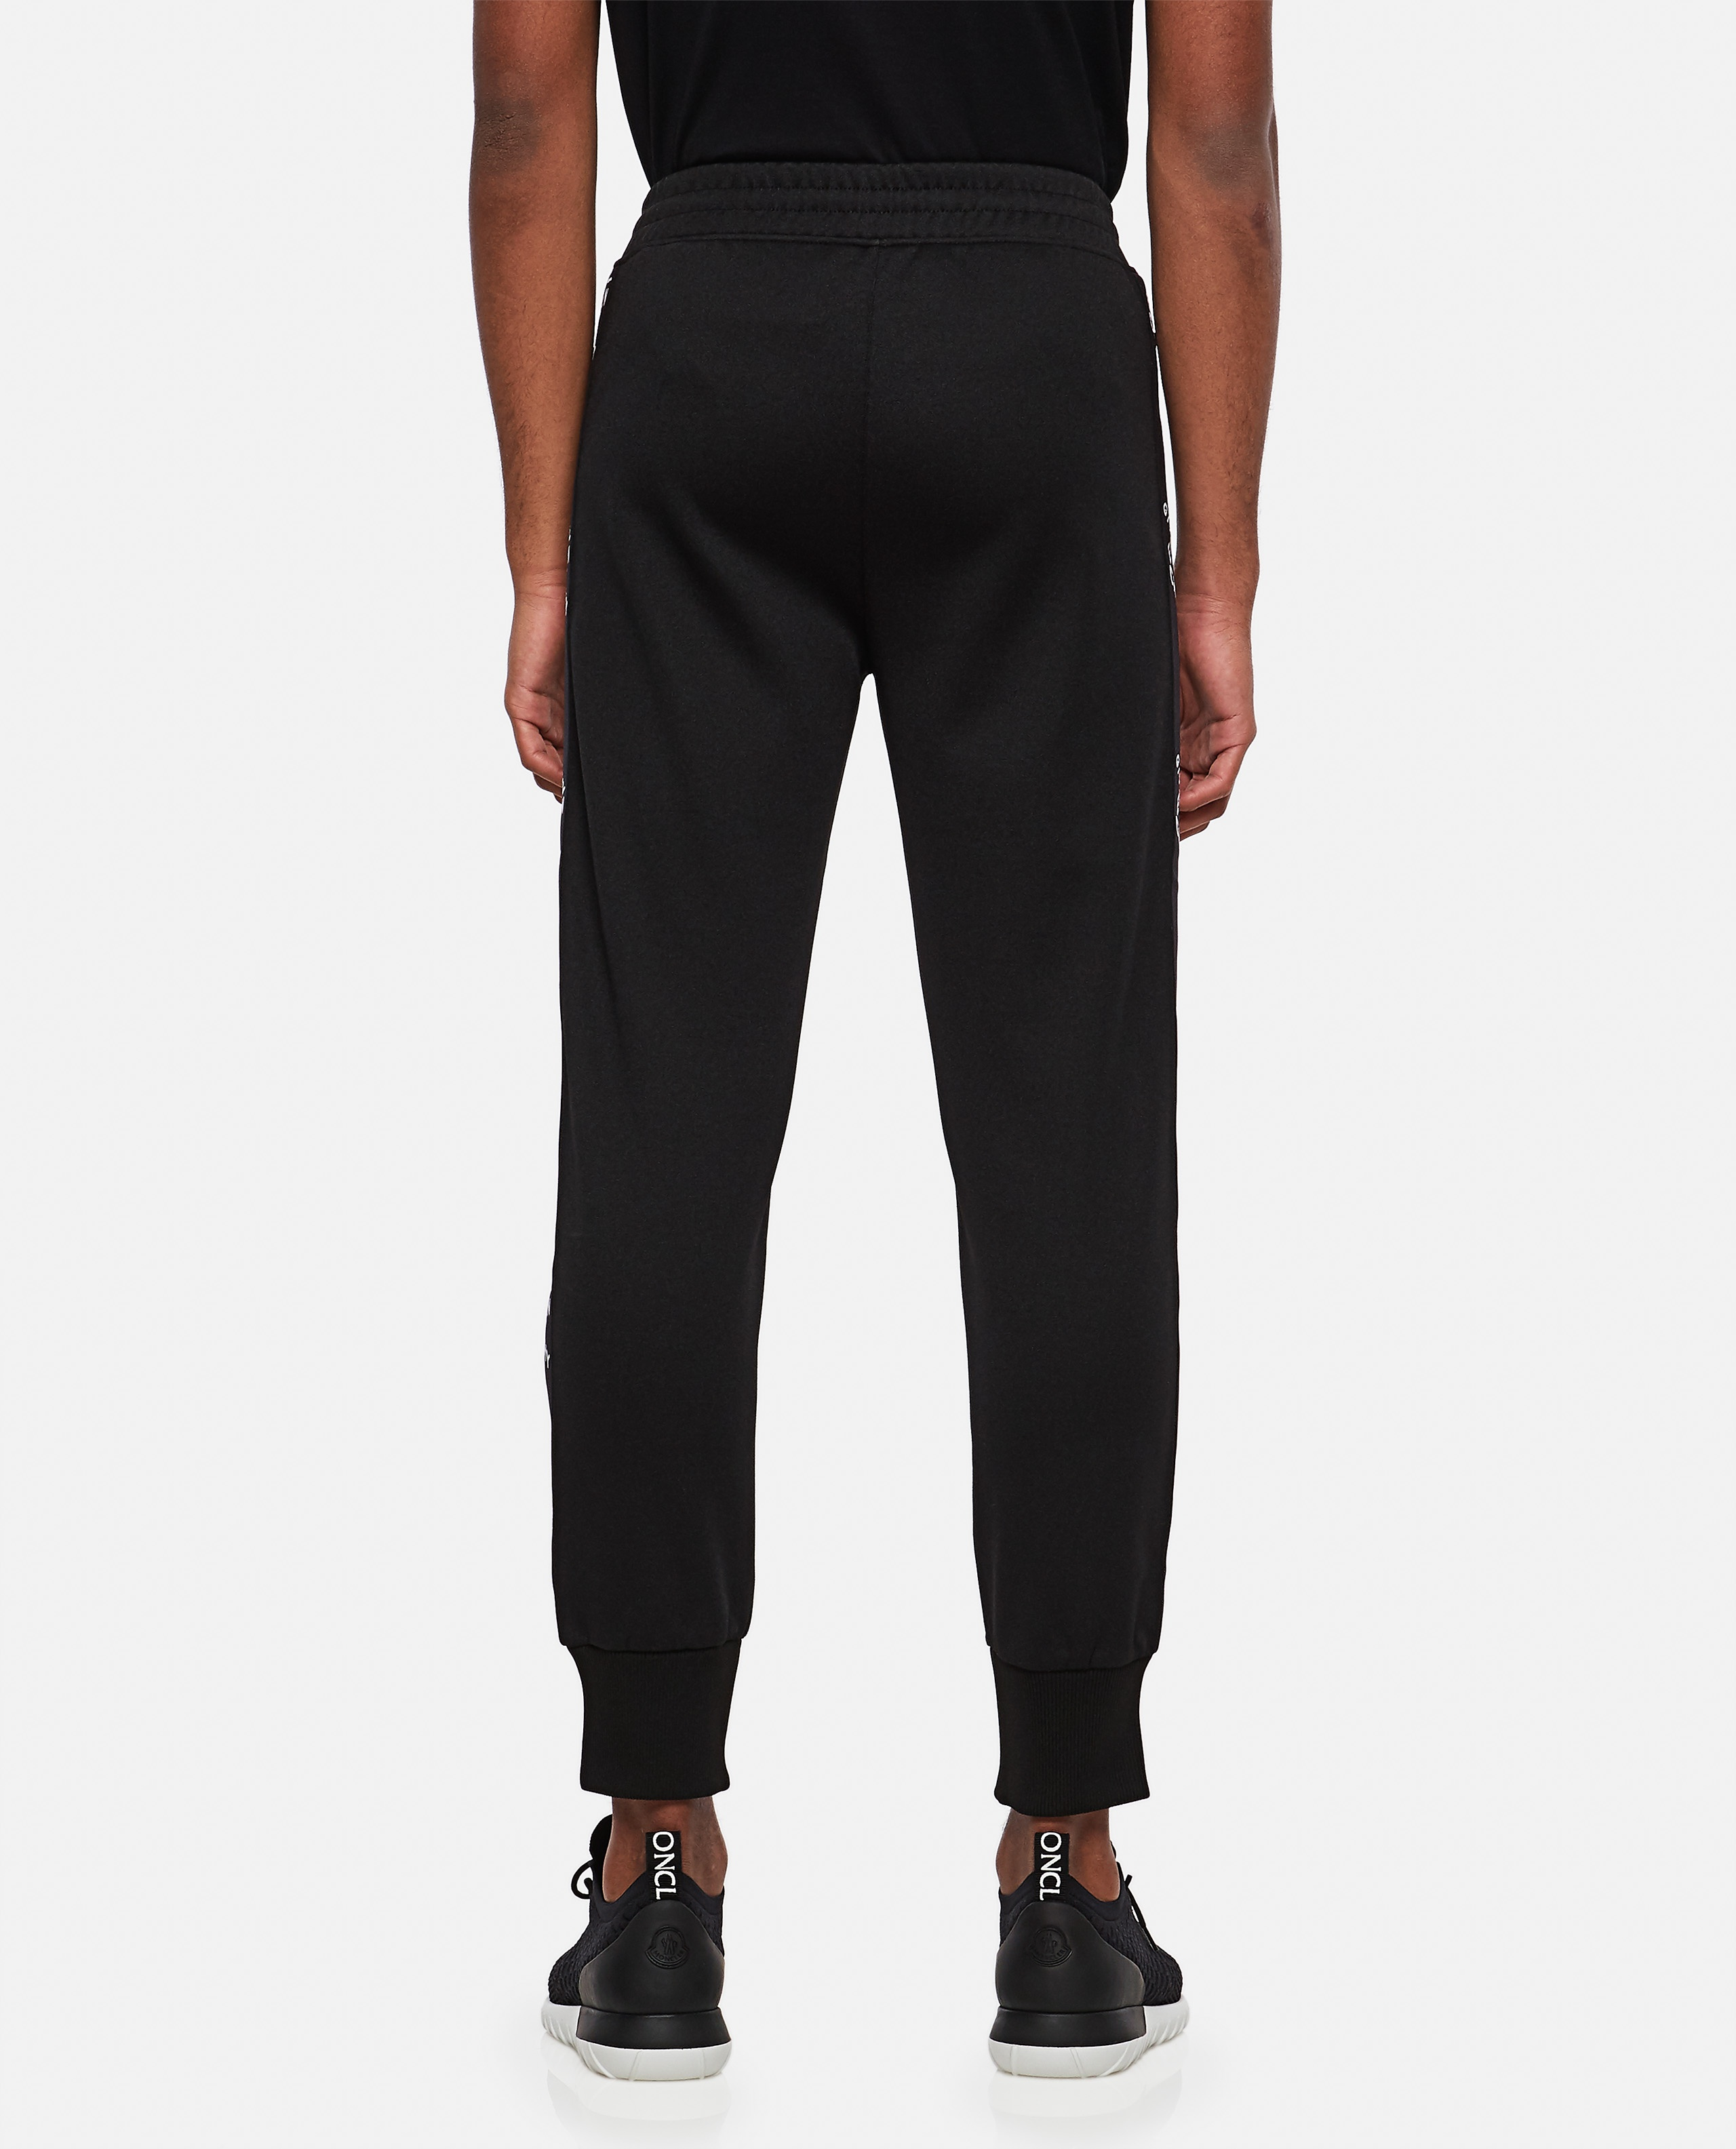 Jogging trousers with logoed bands Men Givenchy 000301870044330 3